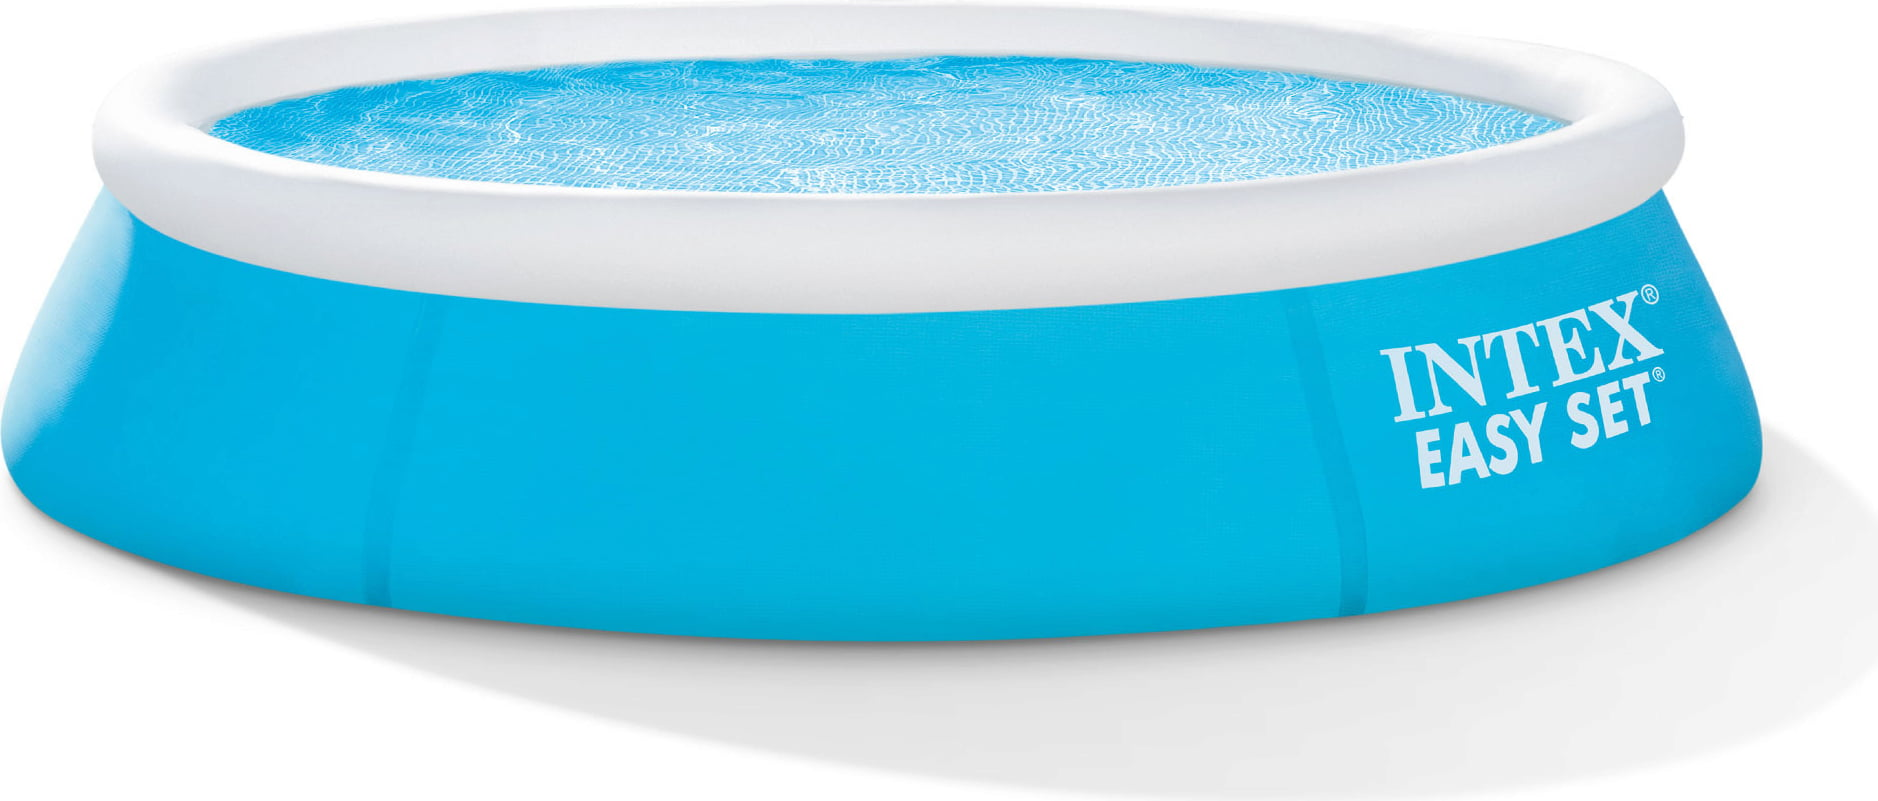 Pool Bodensauger Whaly Https Pools Shop De De 1 0000 Https Pools Shop De De